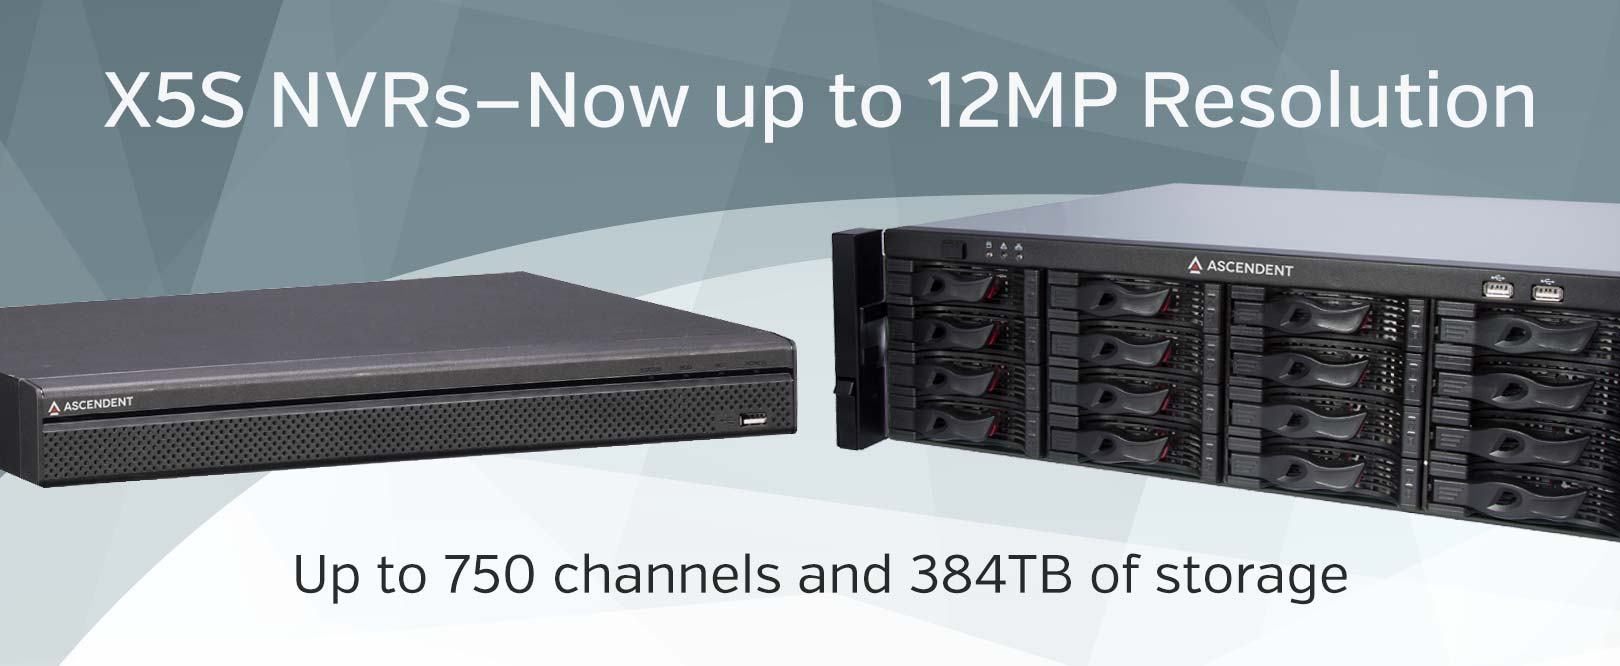 X5S NVRs Now with 12MP Resolution, up to 750 channels and 384TB of storage